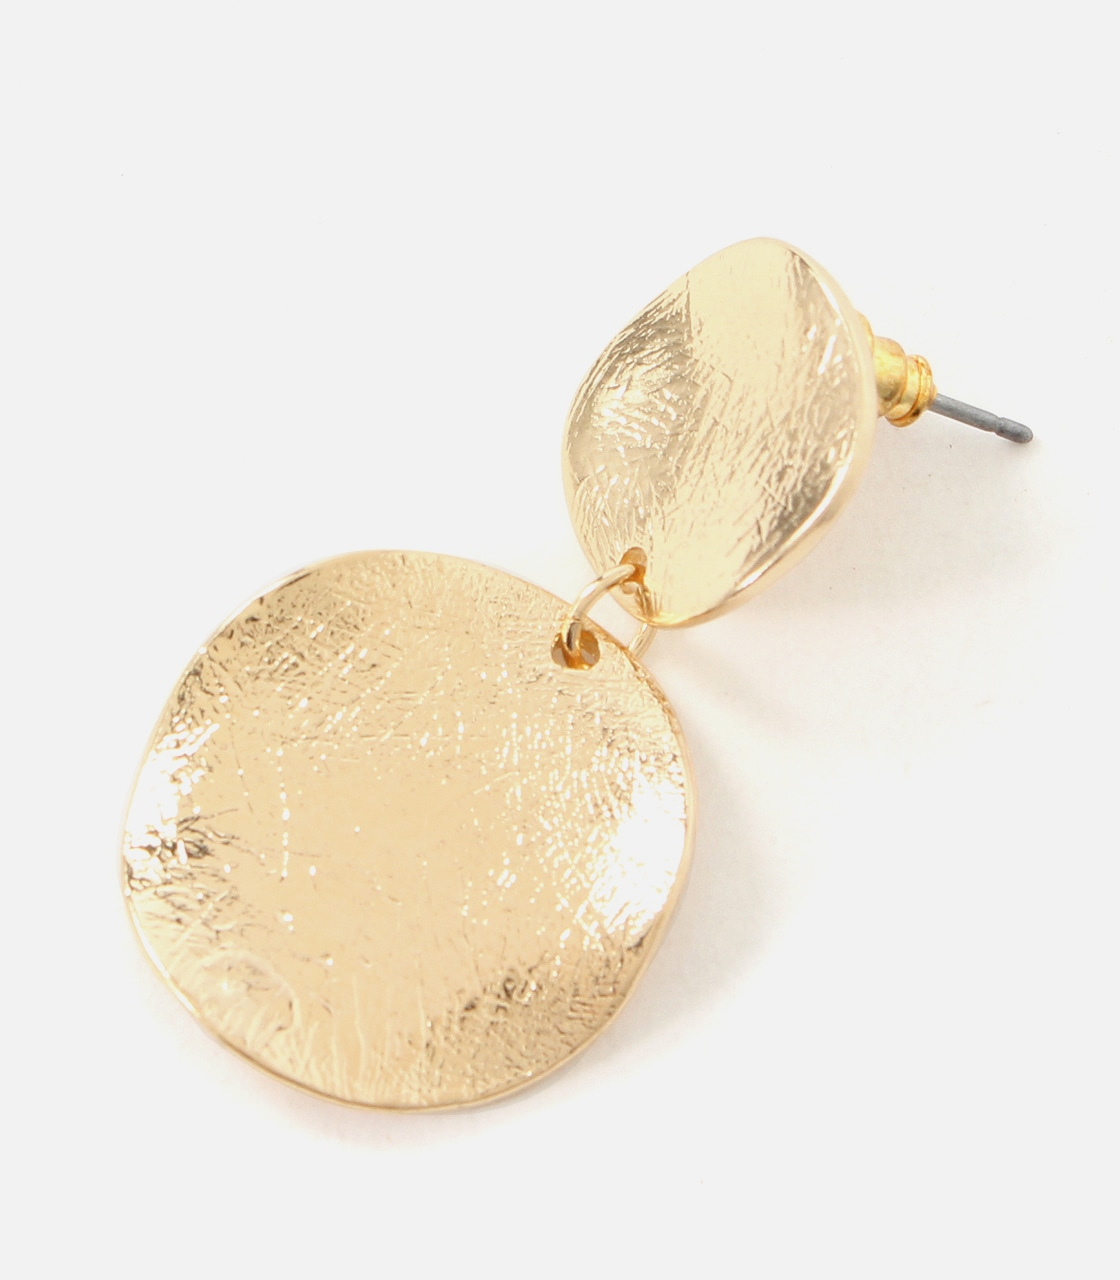 【AZUL BY MOUSSY】BUMPY MERAL ROUND EARRINGS 詳細画像 L/GLD 4